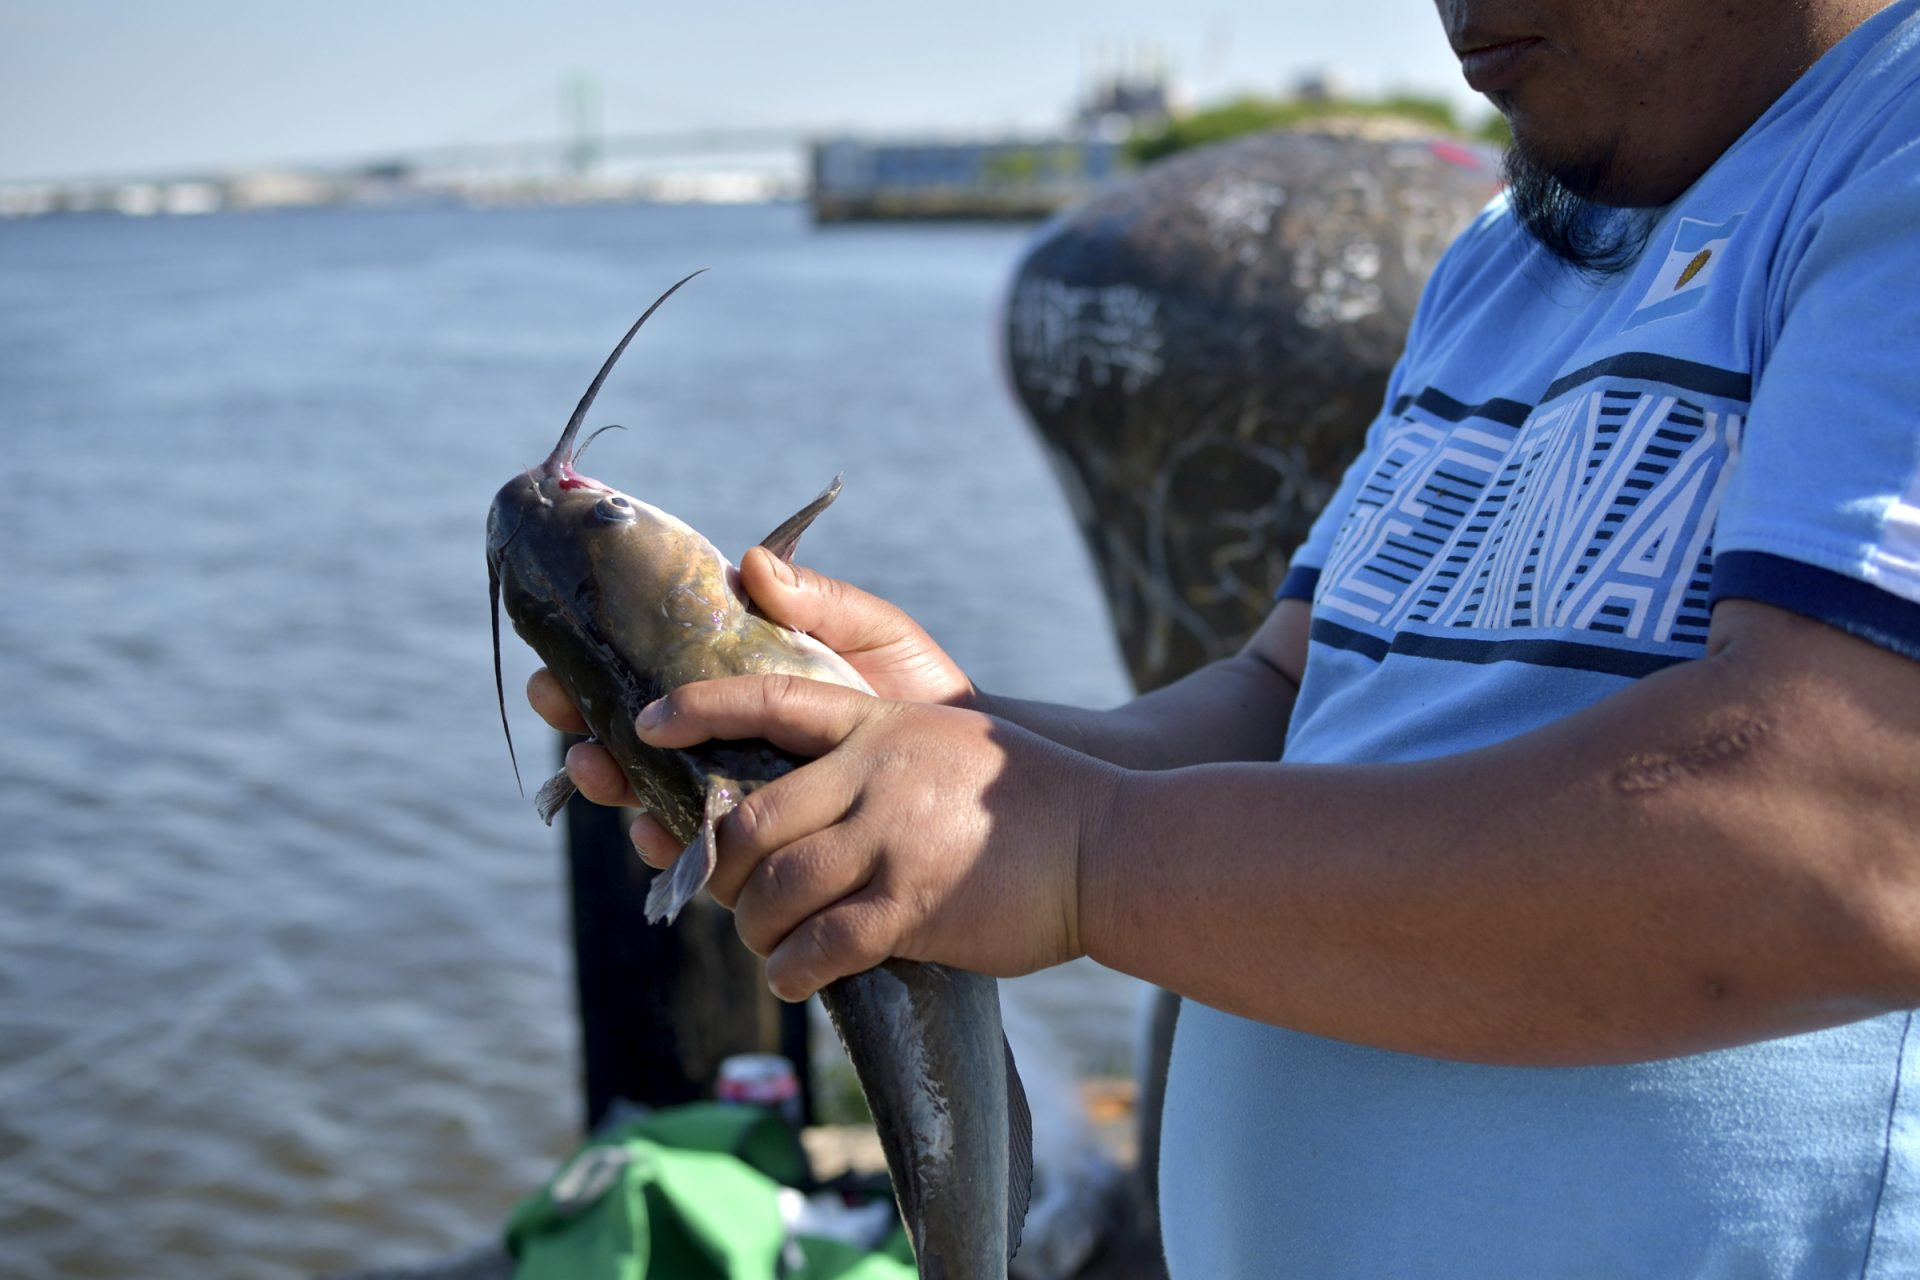 New Jersey issues first advisories for consumption of fish